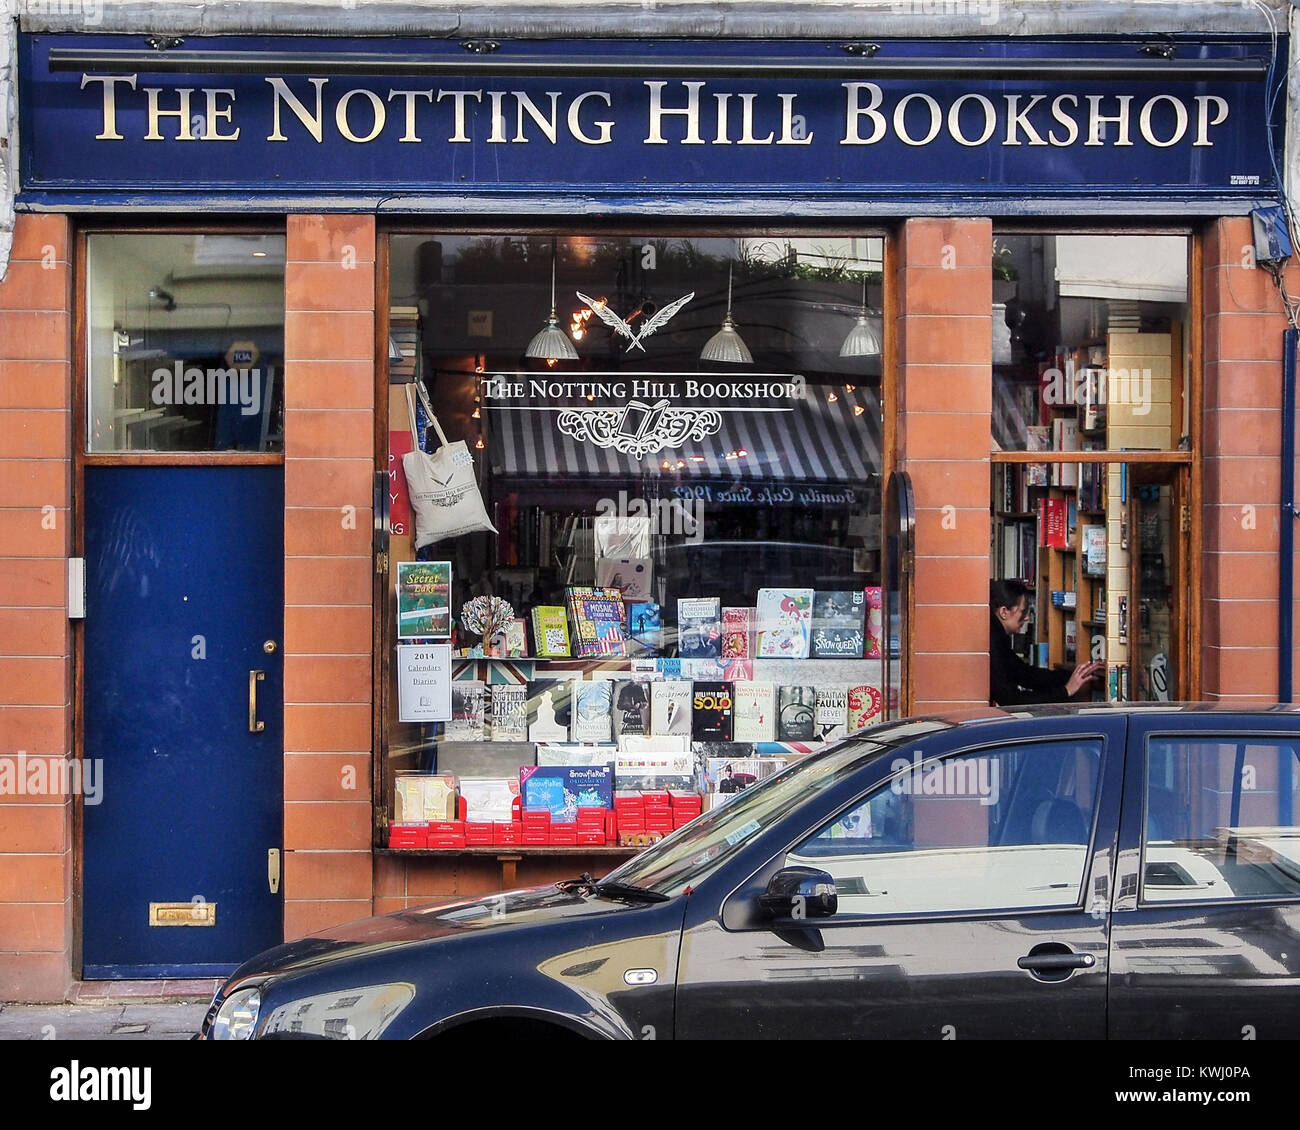 The Notting Hill Bookshop, inspiration for the bookshop in the film Notting Hill - Stock Image